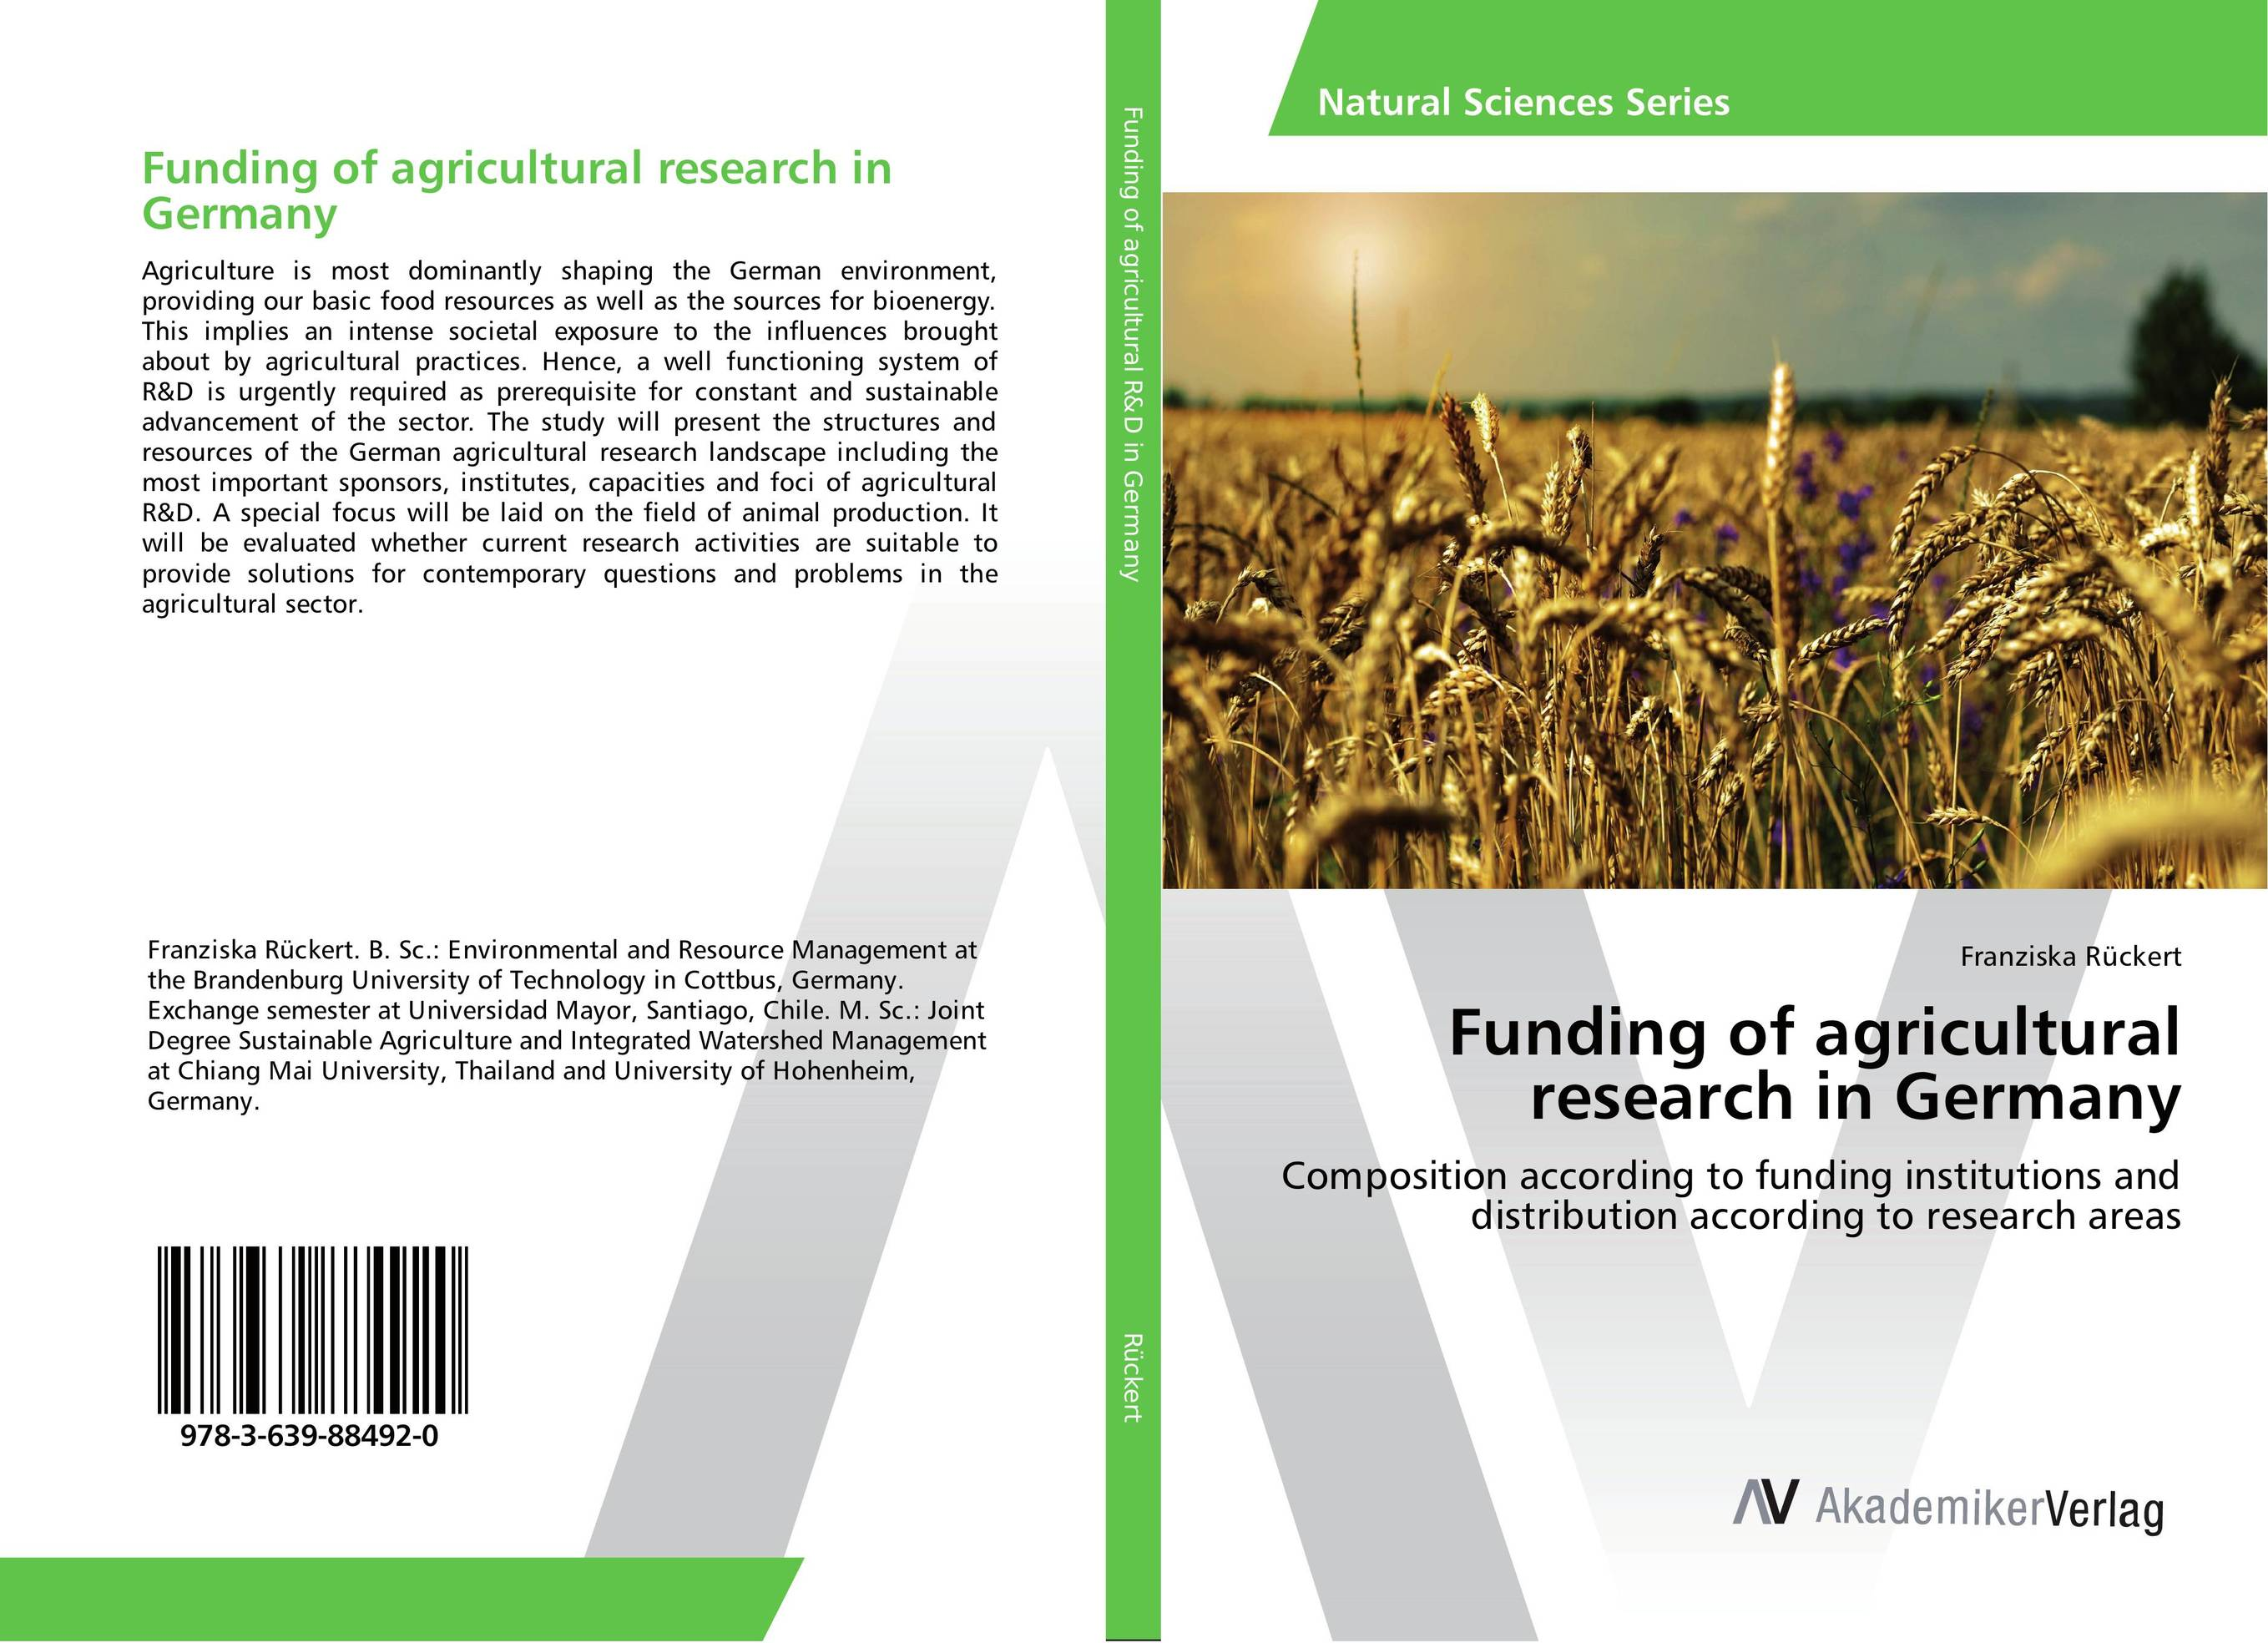 Funding of agricultural research in Germany cold storage accessibility and agricultural production by smallholders